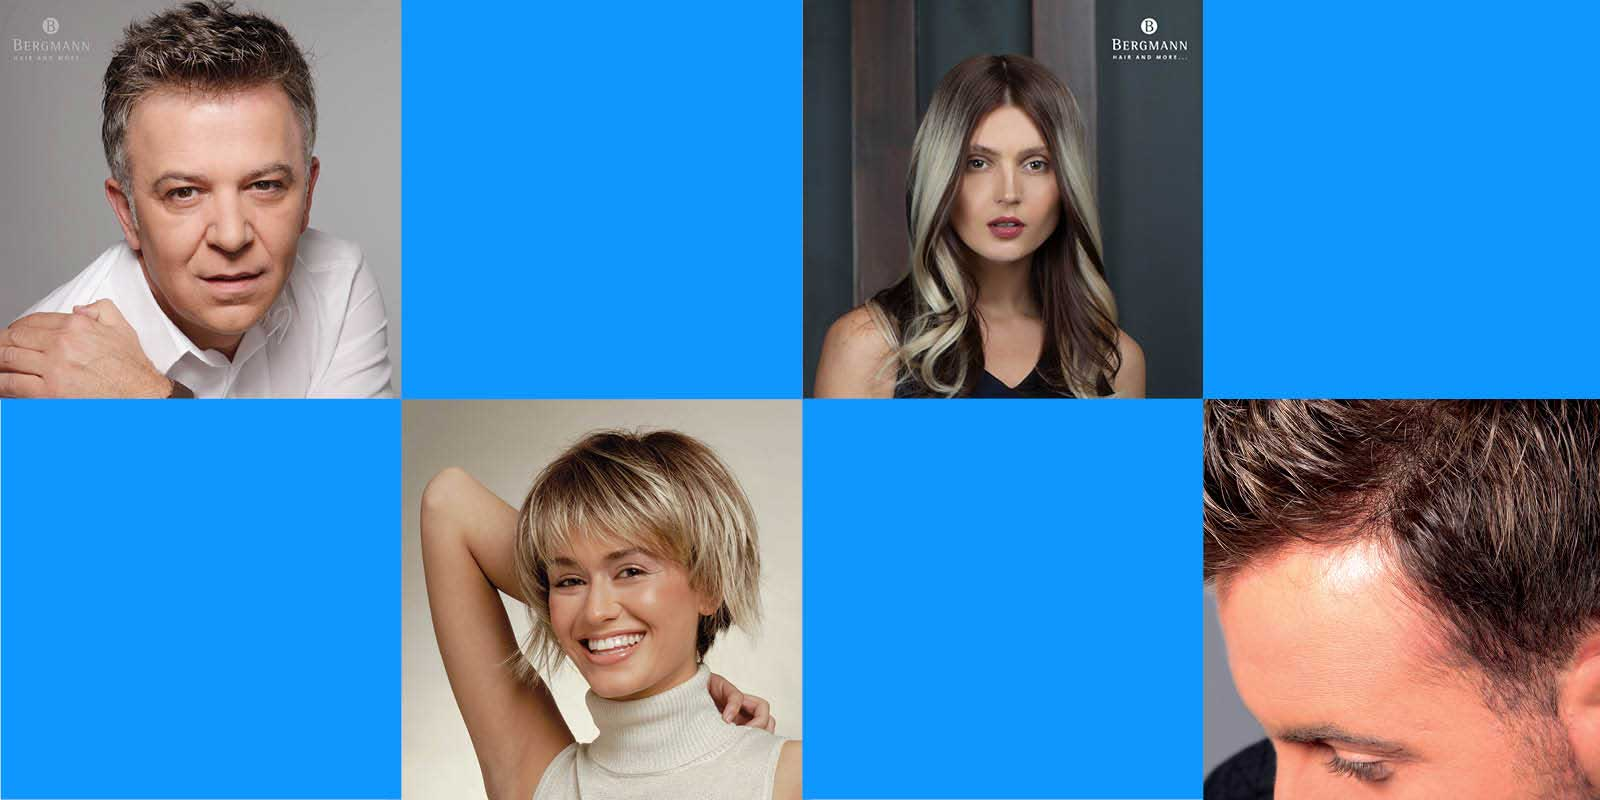 wigs-hair-prosthesis-new-age-bergmann-kord-hair-clinics-home-page-photo-puzzle-001